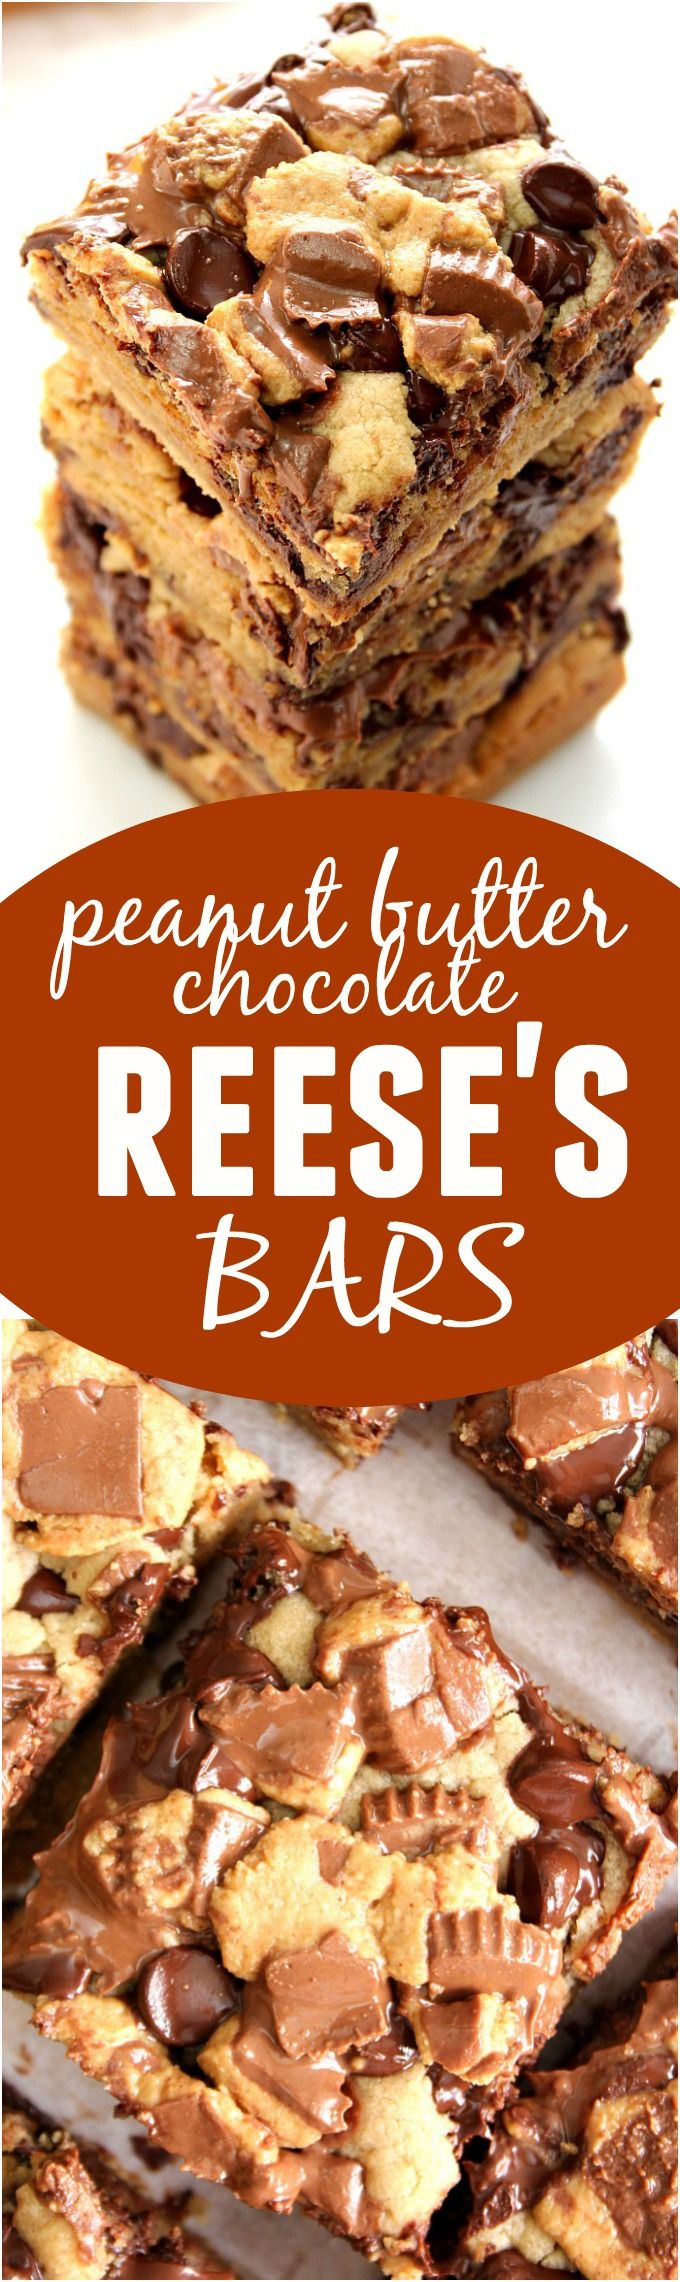 手机壳定制the running shoe store Peanut Butter Chocolate REESE   S Cookie Bars  gooey sweet and buttery Quick and easy treat for peanut butter cup lovers